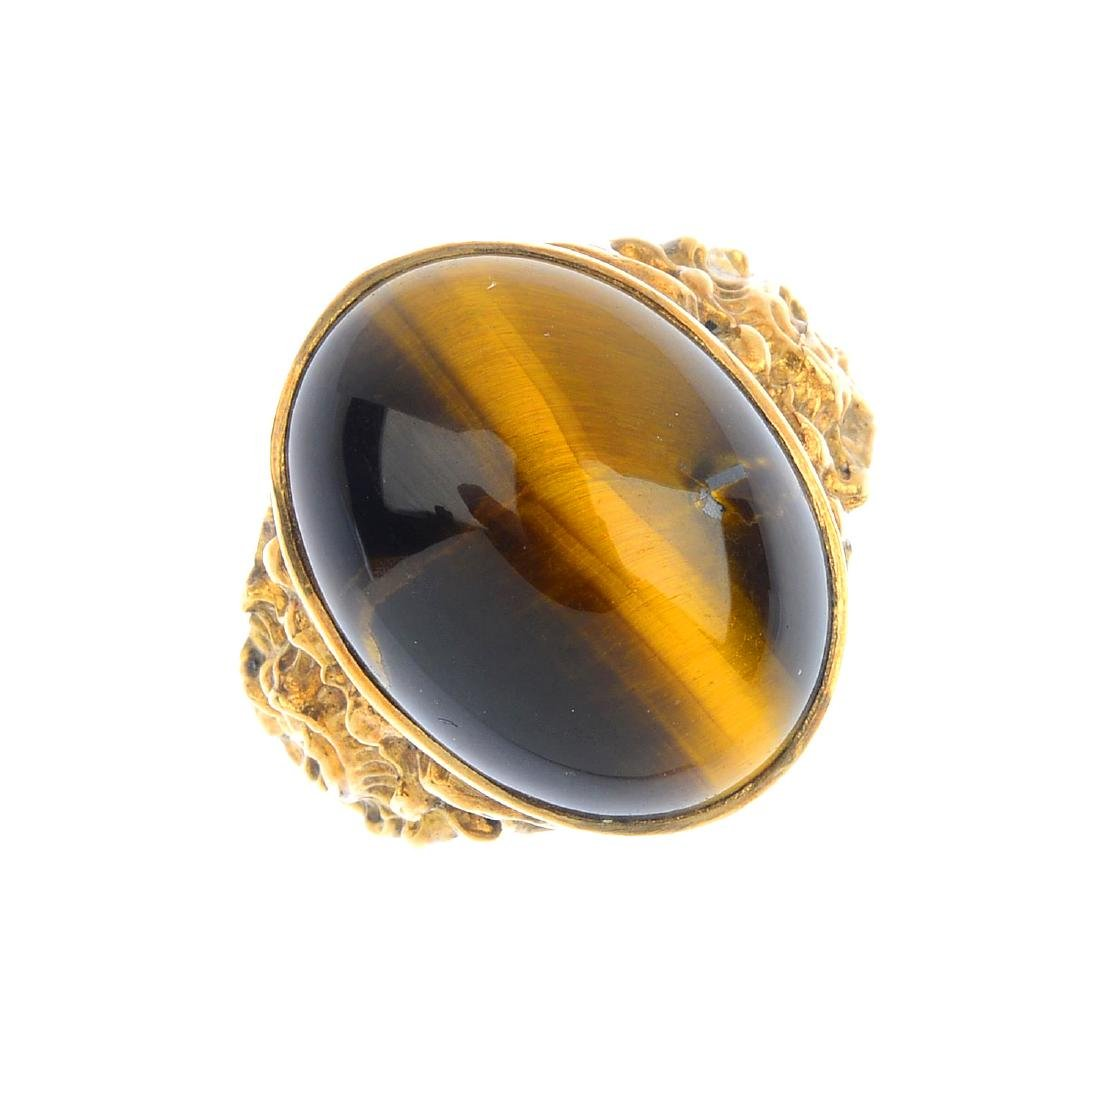 A tiger's-eye dress ring. The oval tiger's-eye